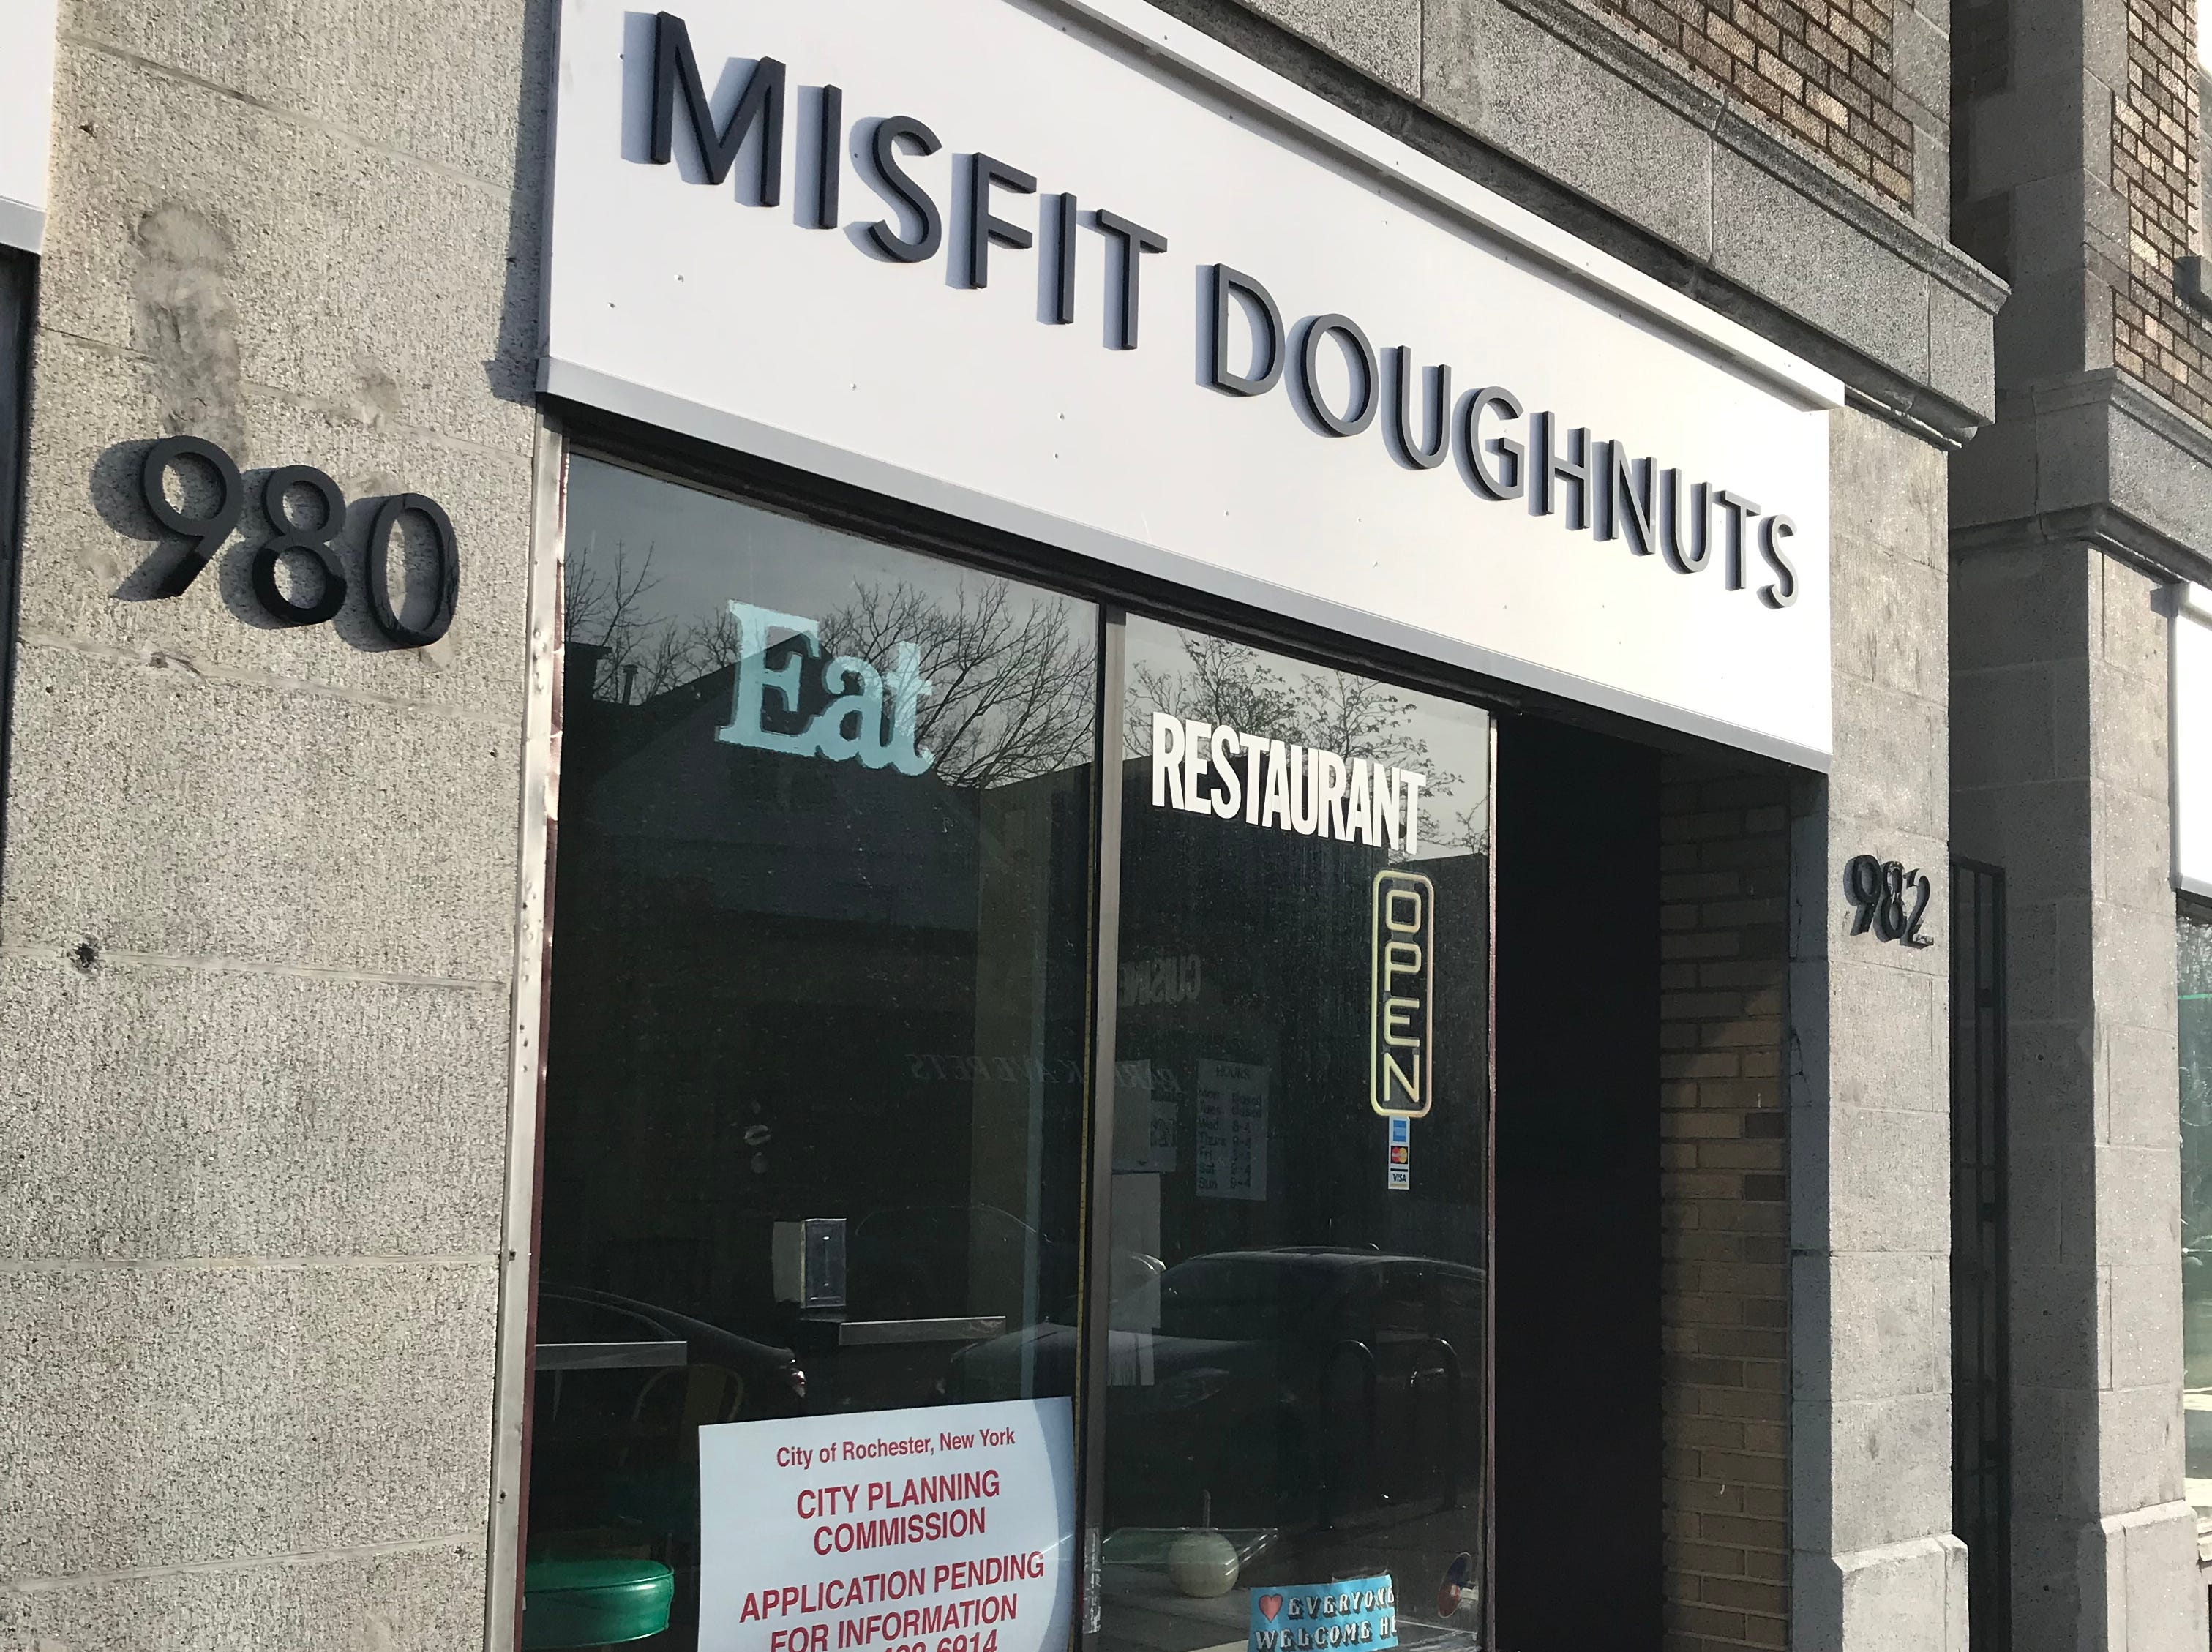 Misfit Doughnuts is at 982 Monroe Ave. in Rochester